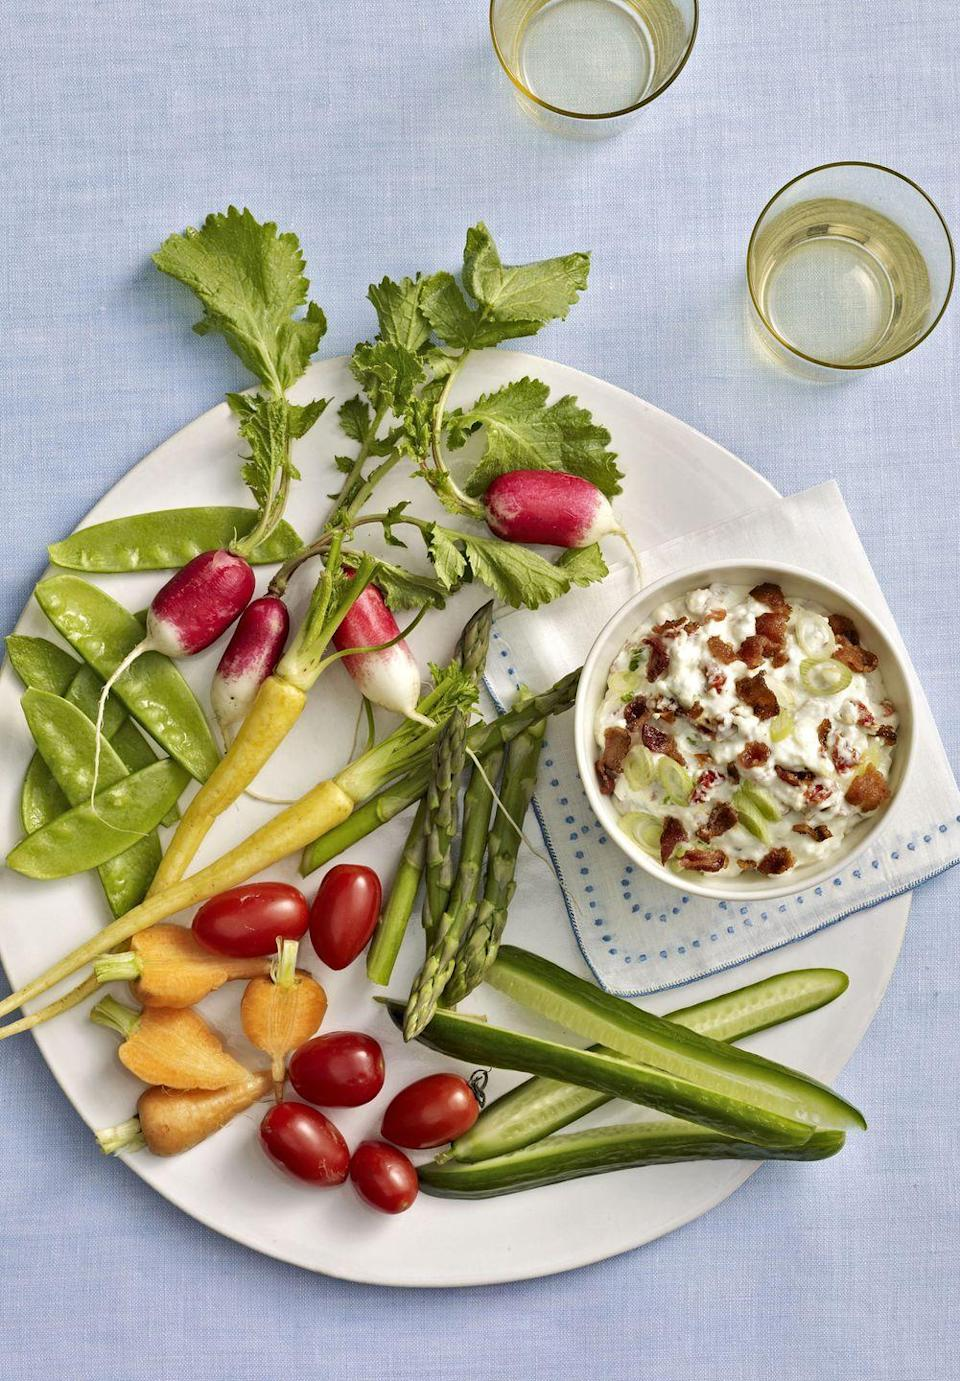 """<p>Our choice for the last dip to round out your party platters.</p><p><strong><a href=""""https://www.countryliving.com/food-drinks/recipes/a3359/bacon-dip-recipe/"""" rel=""""nofollow noopener"""" target=""""_blank"""" data-ylk=""""slk:Get the recipe"""" class=""""link rapid-noclick-resp"""">Get the recipe</a>.</strong></p>"""